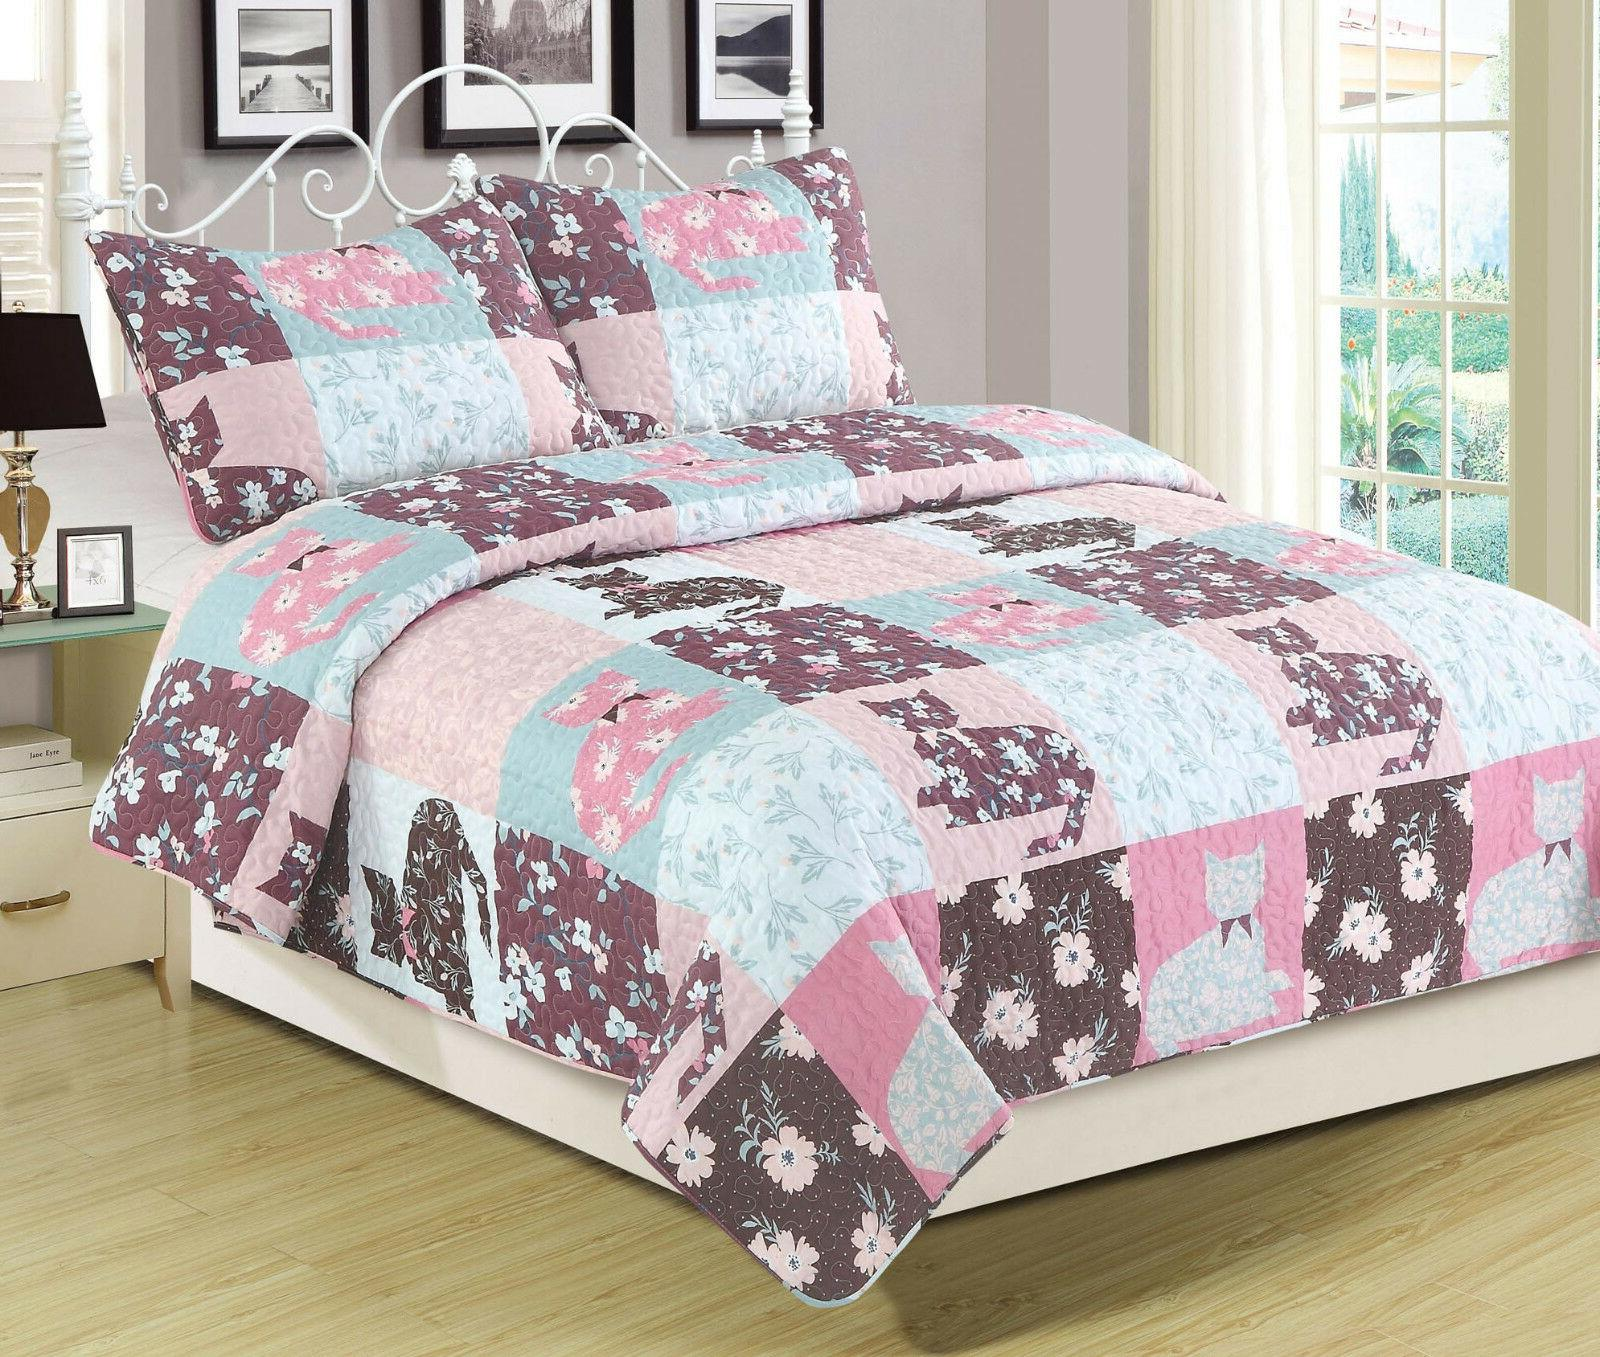 twin full queen or king quilt floral